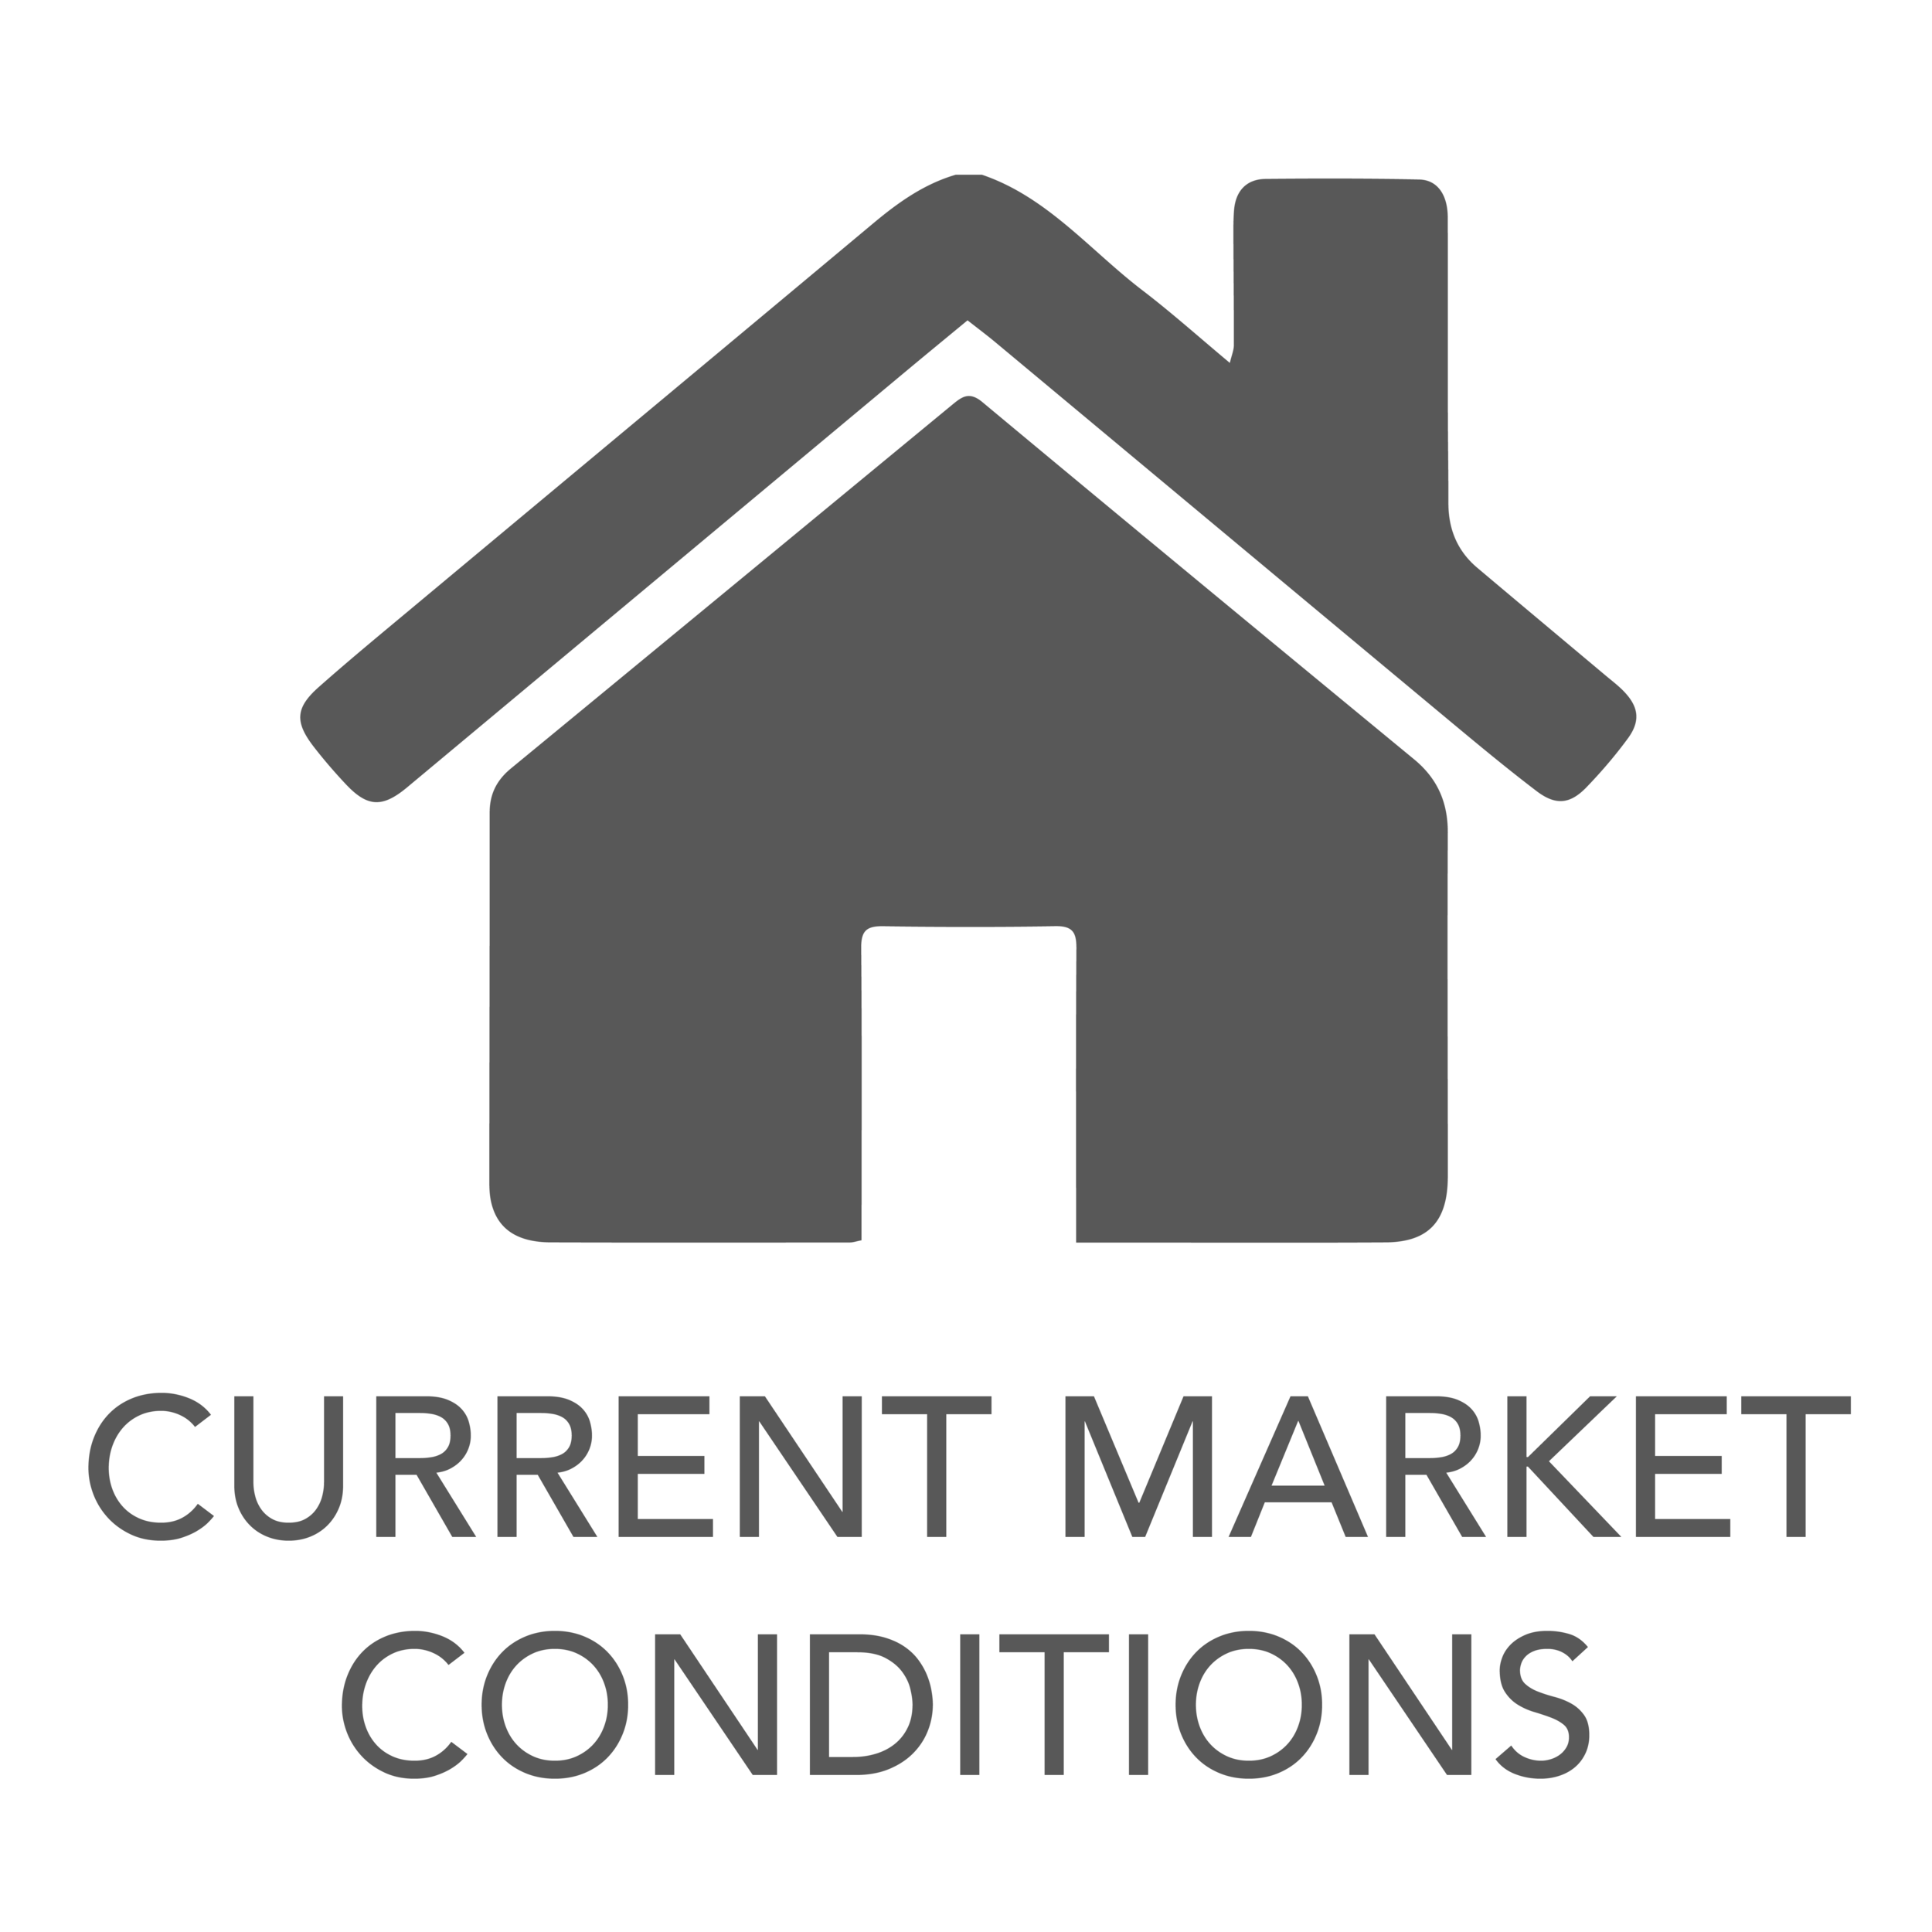 currentmarketconditions.png